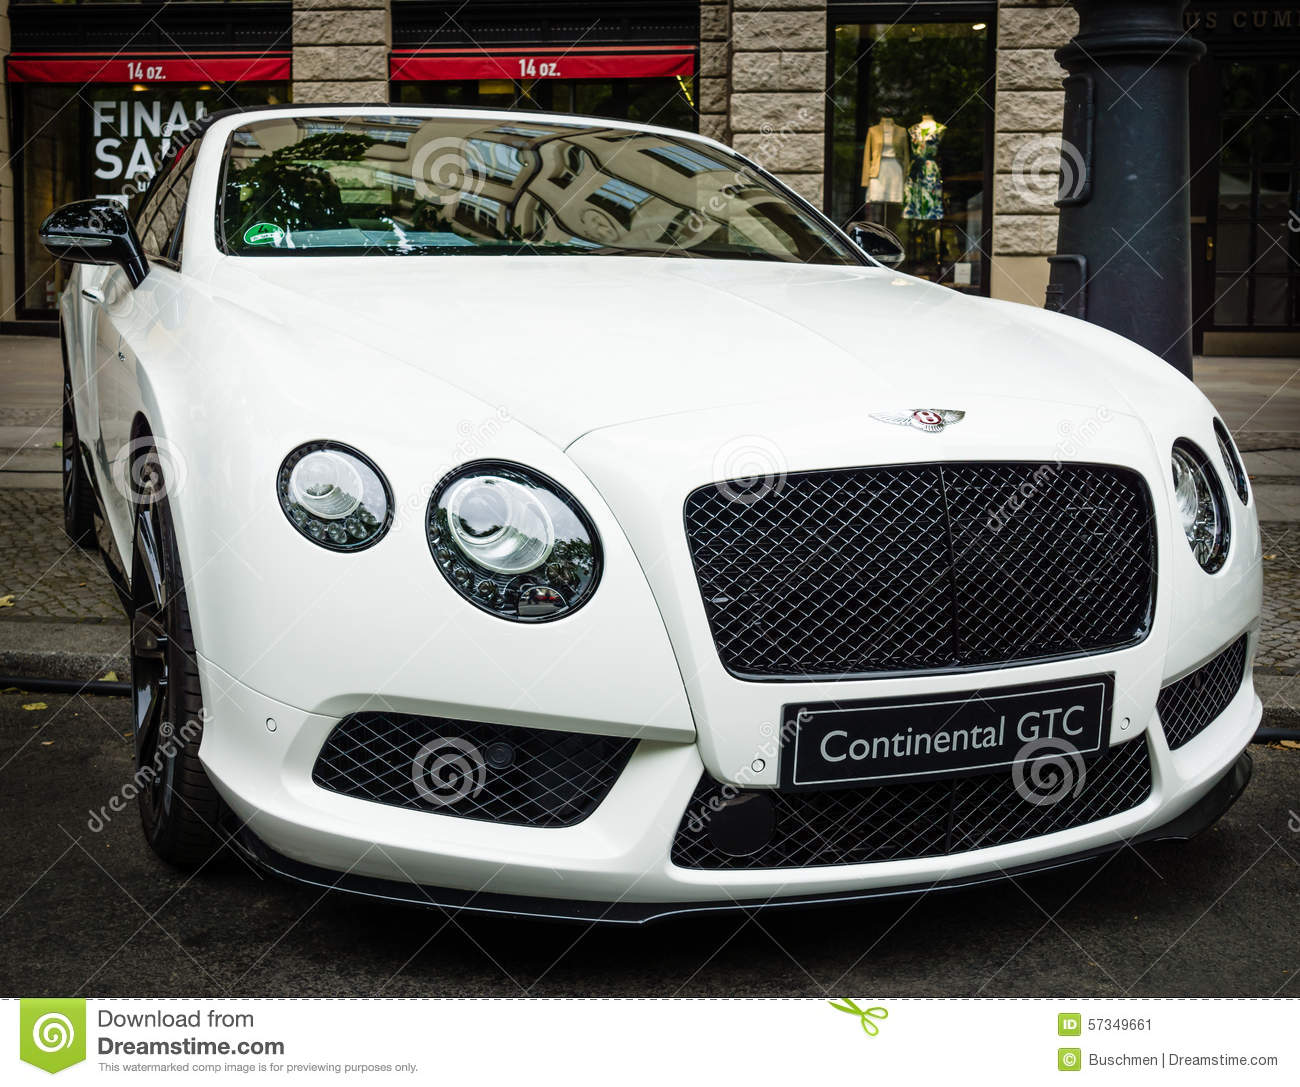 Cars Luxury Cars Bentley: Luxury Car Bentley Continental GTC Editorial Photo